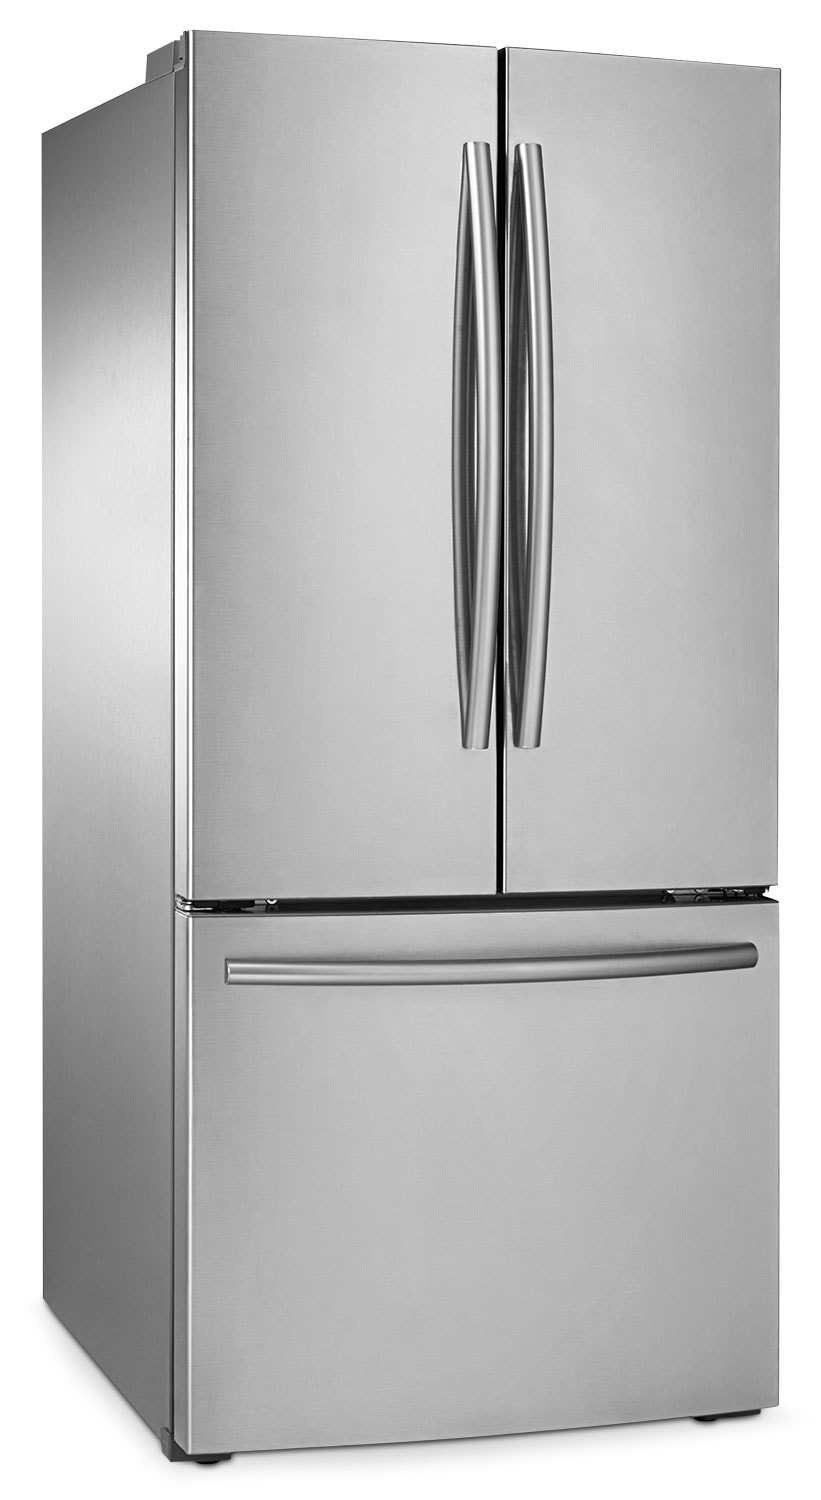 Refrigerators and Freezers - Samsung 22 Cu. Ft.  French-Door Refrigerator with Internal Water Dispenser - RF221NCTASR/AA